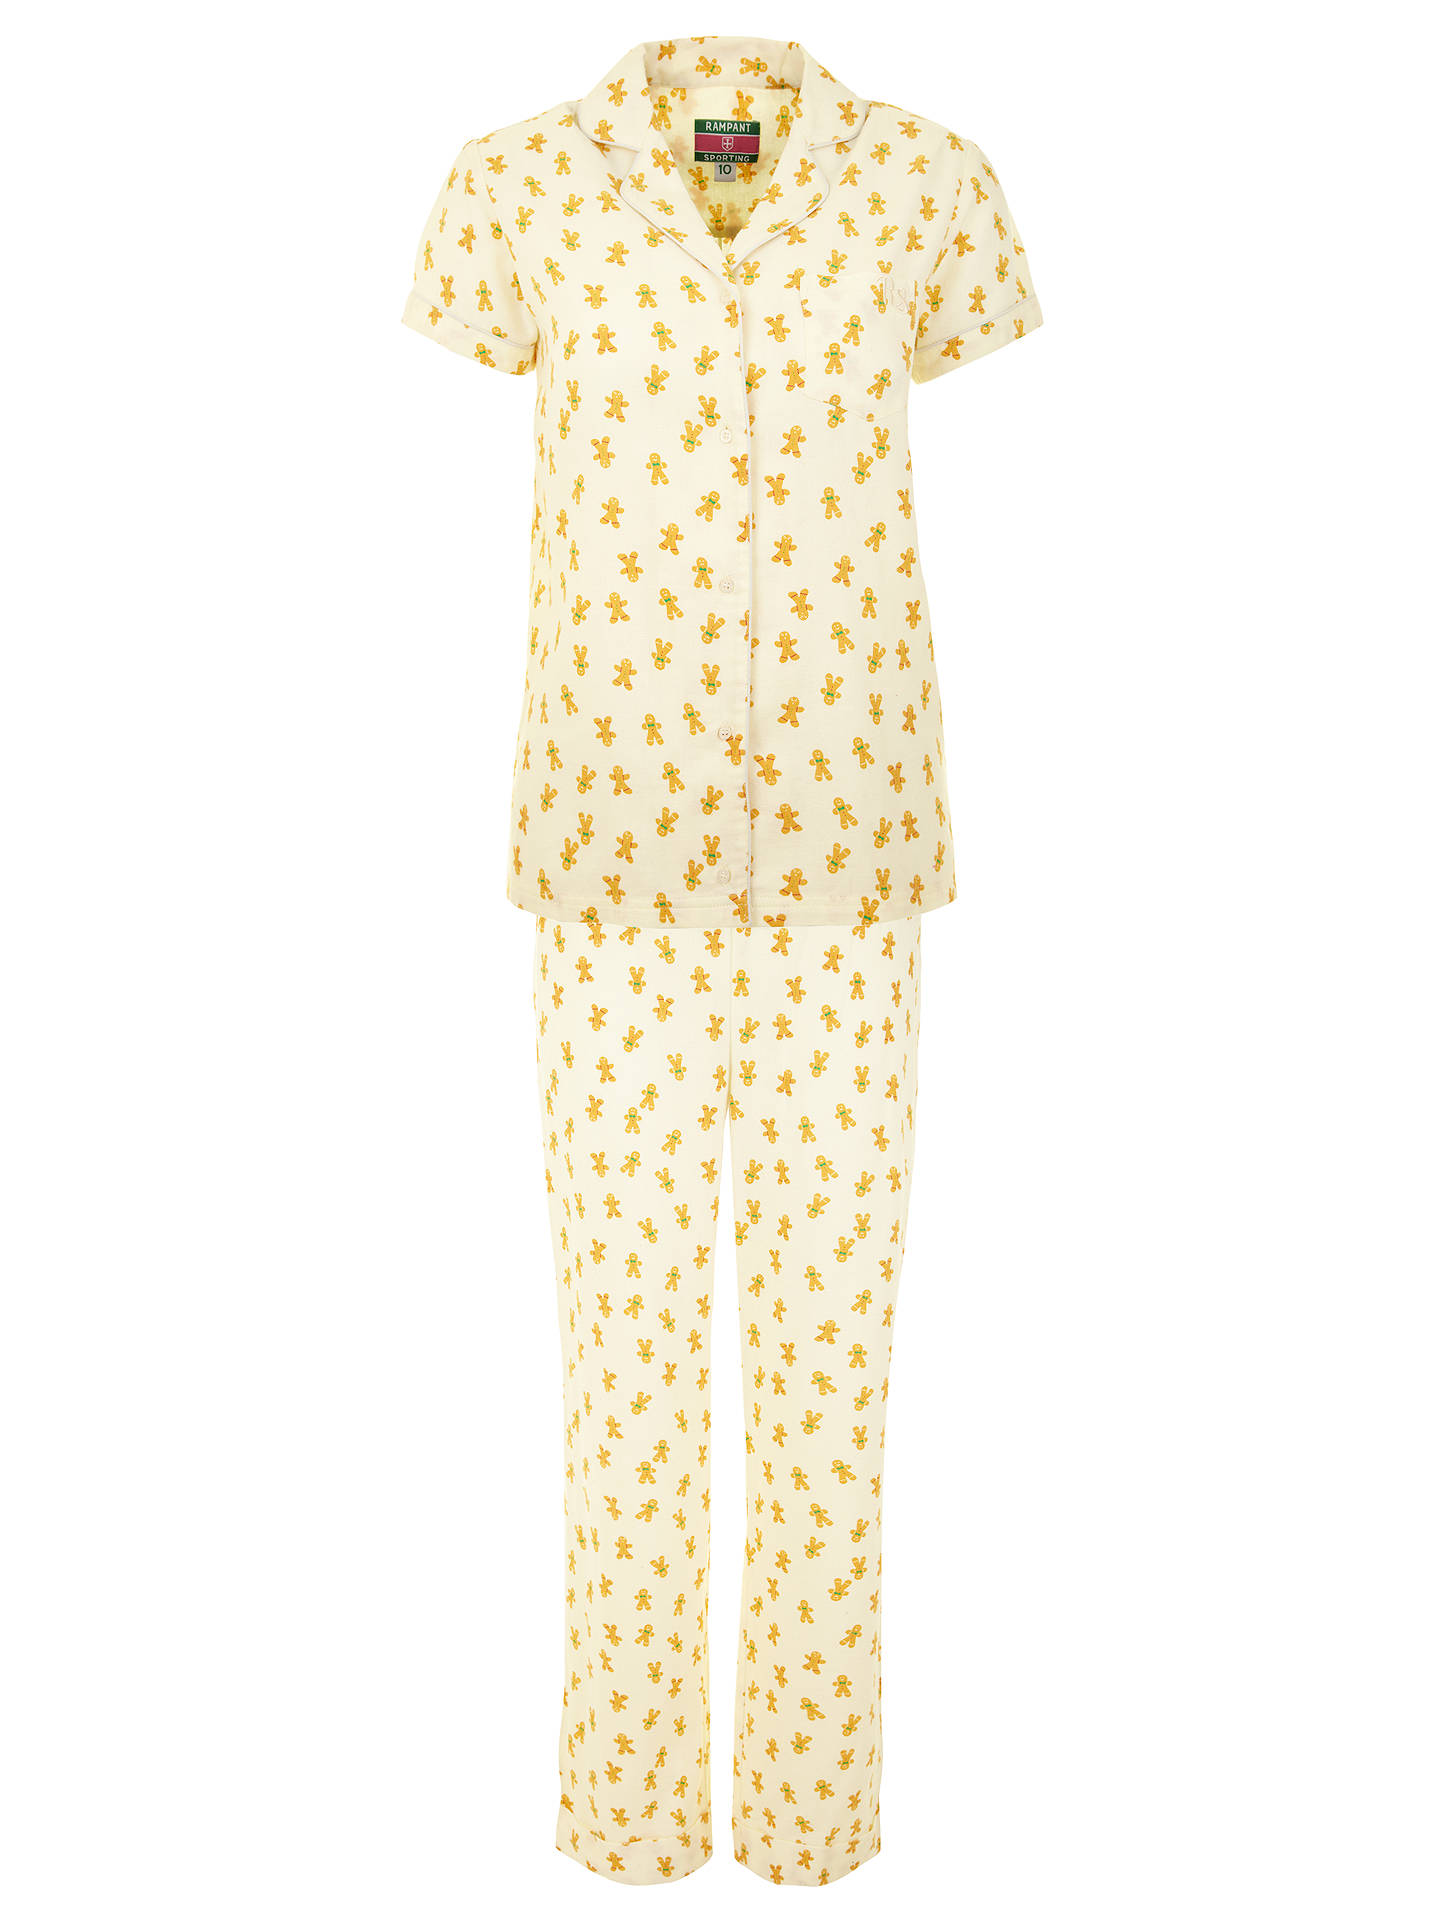 Buy Rampant Sporting Gingerbread Pyjama Set, Multi, 8 Online at johnlewis.com